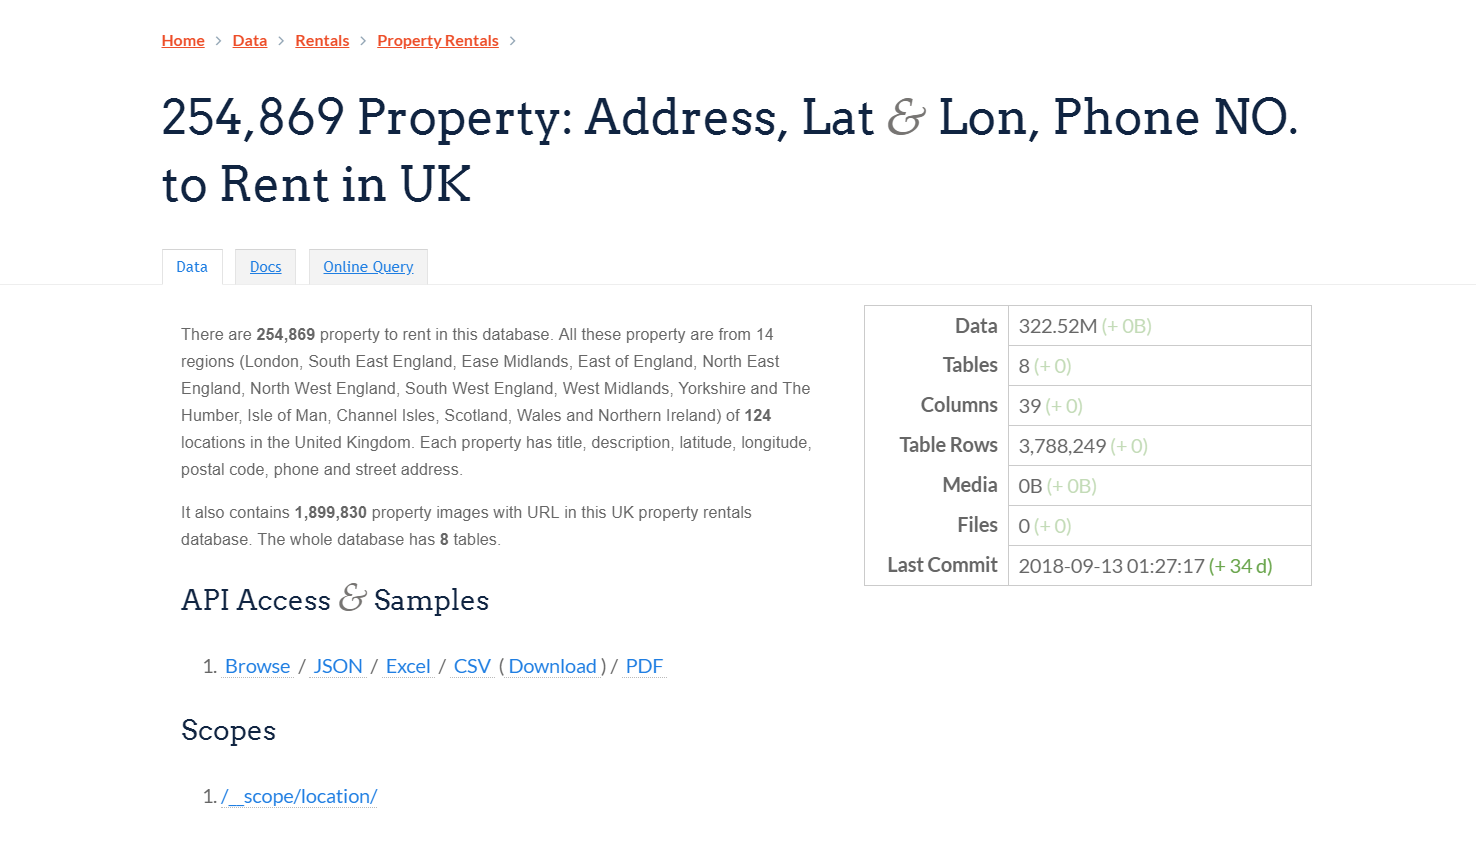 254,869 Property: Address, Lat & Lon, Phone NO  to Rent in